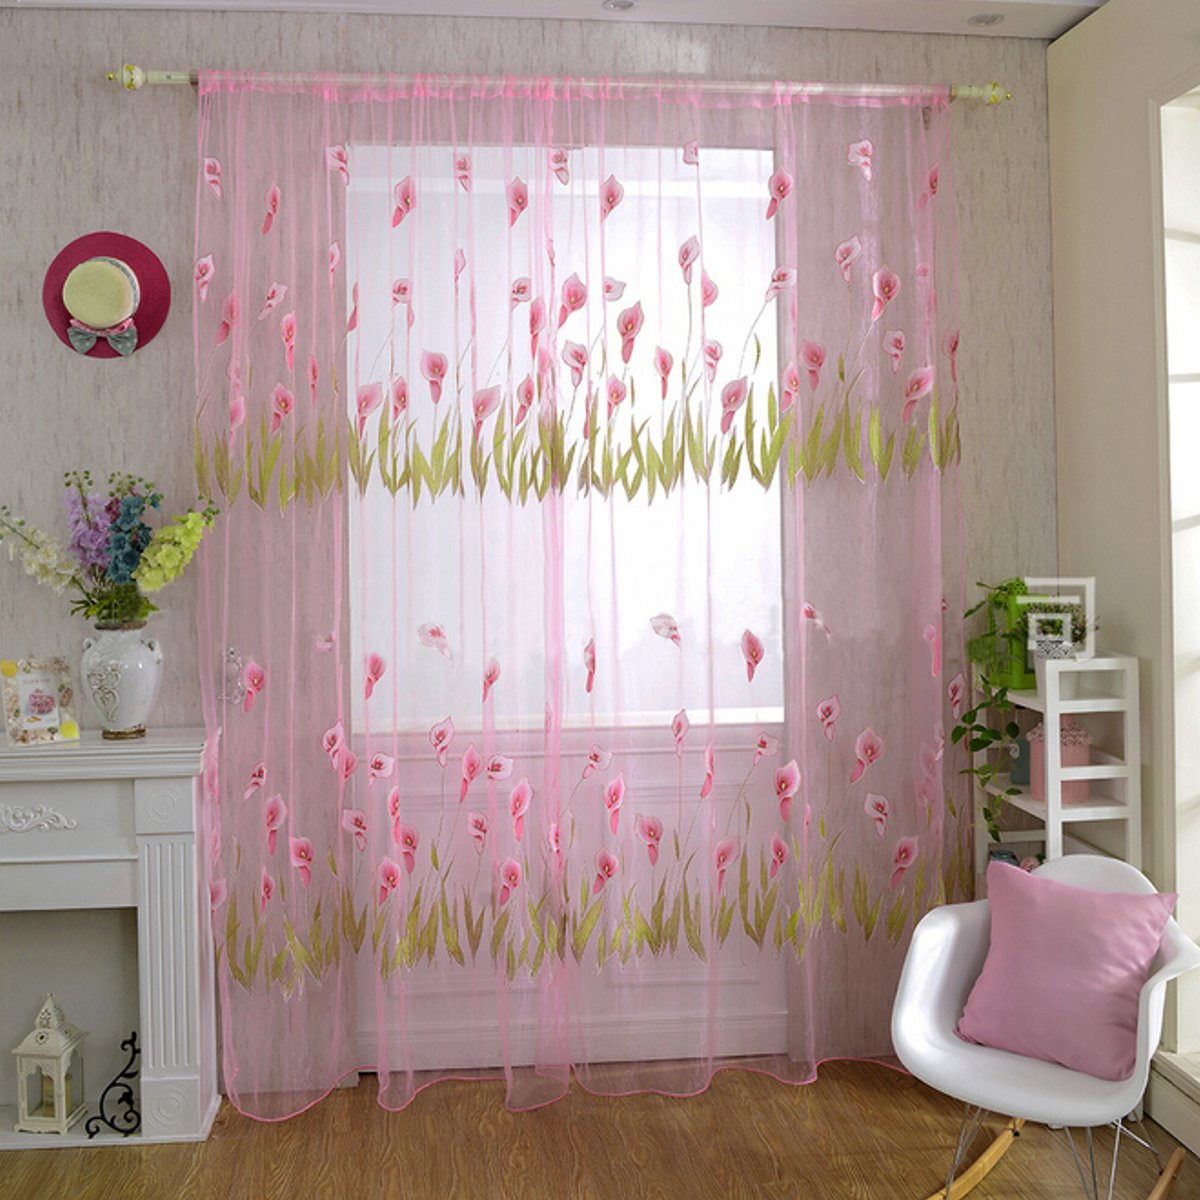 Alocasia Macrorrhizos Flowers Print Tulle Window Curtain Balcony Bedroom Bay Window Screen